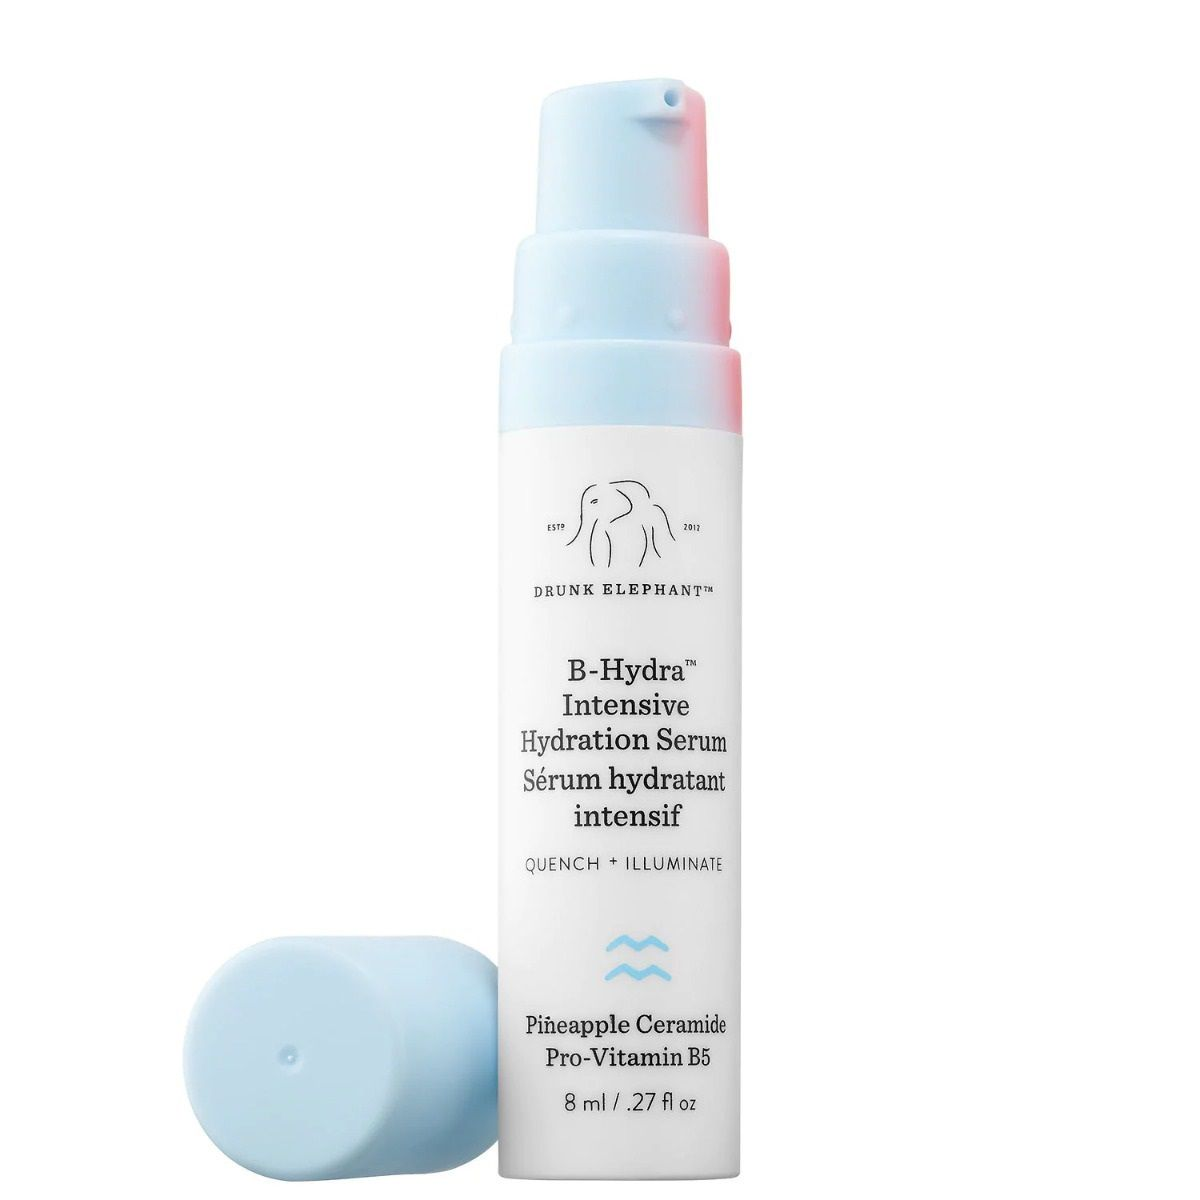 Mini B-Hydra Intensive Hydration Serum DRUNK ELEPHANT